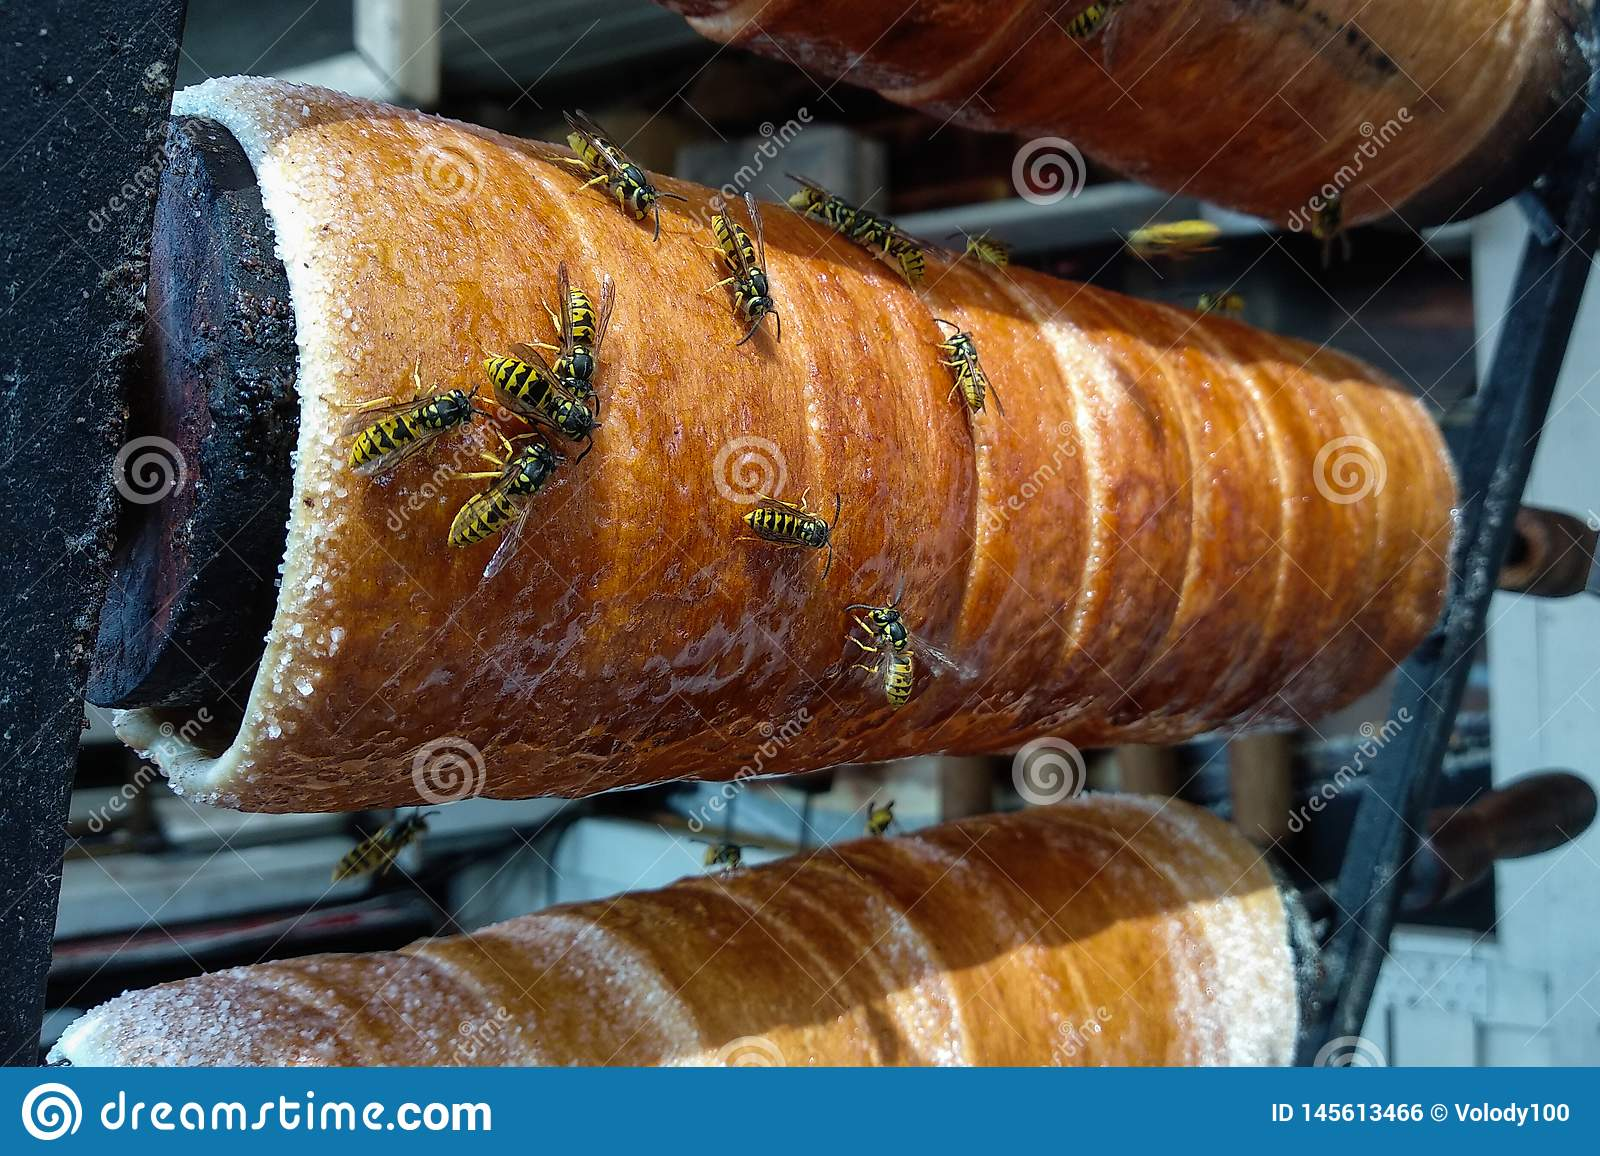 Close up view of the working bees on the honeycomb with sweet honey. Honey is beekeeping healthy produce